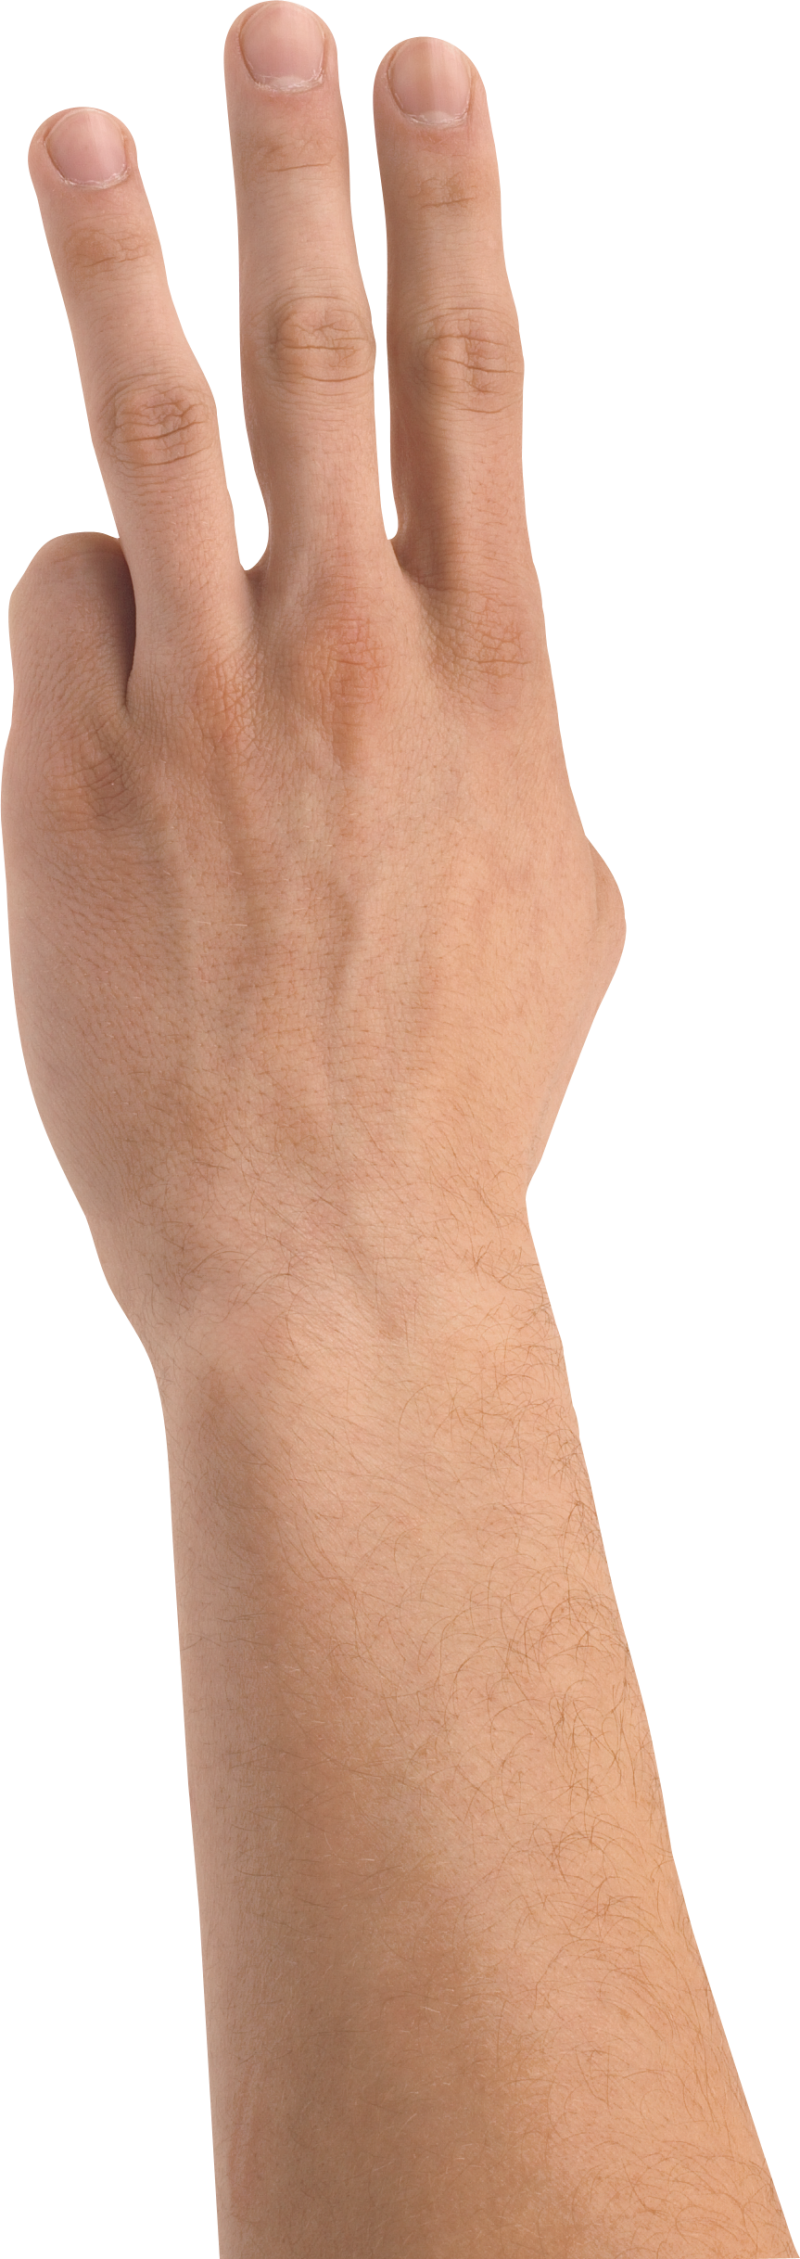 Three Finger Hand PNG Image